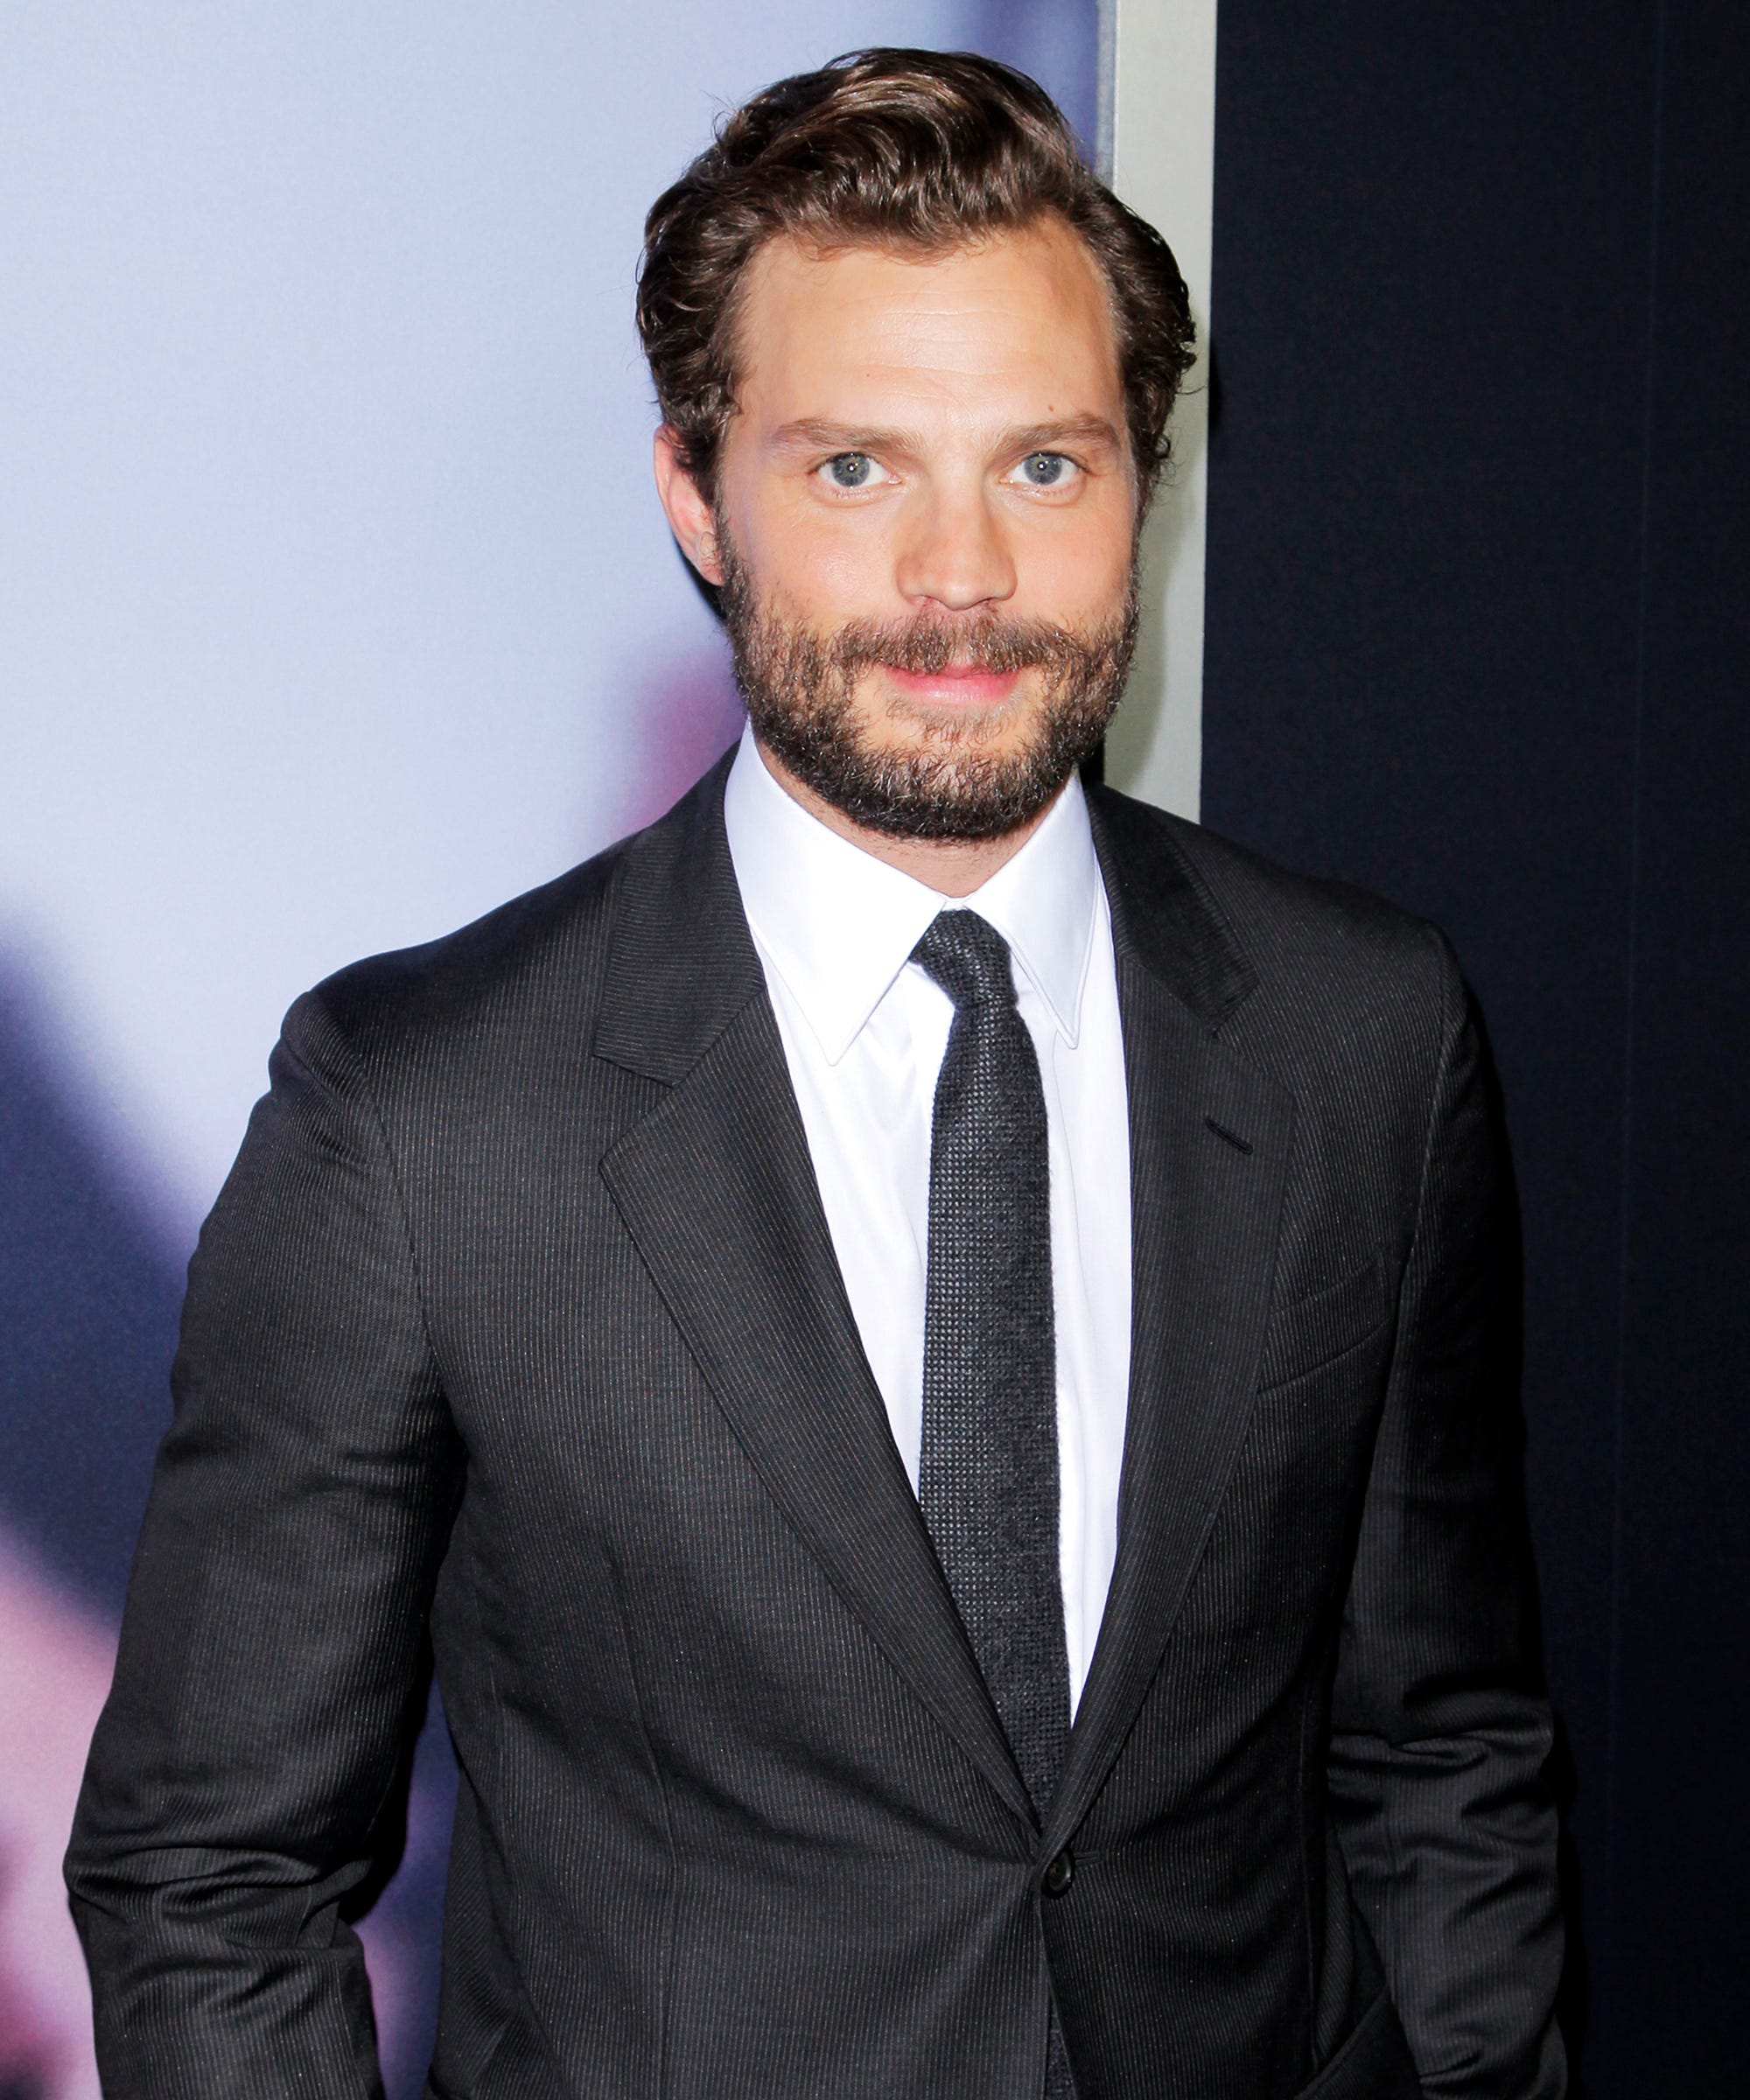 Move Over, Dirty John: Jamie Dornan Is Your Dr. Death